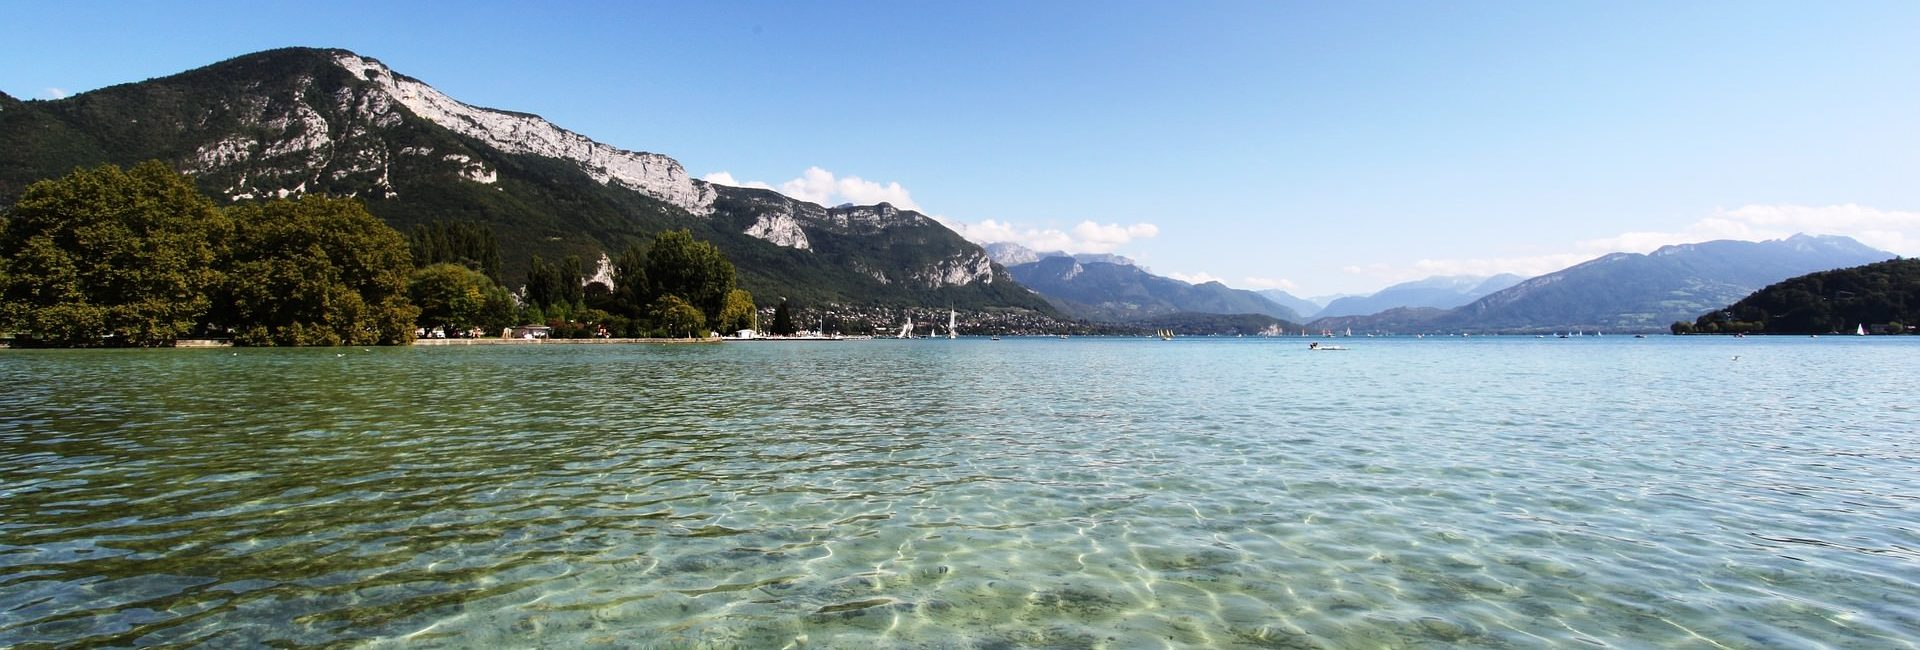 annecy-lake-1173384_1920